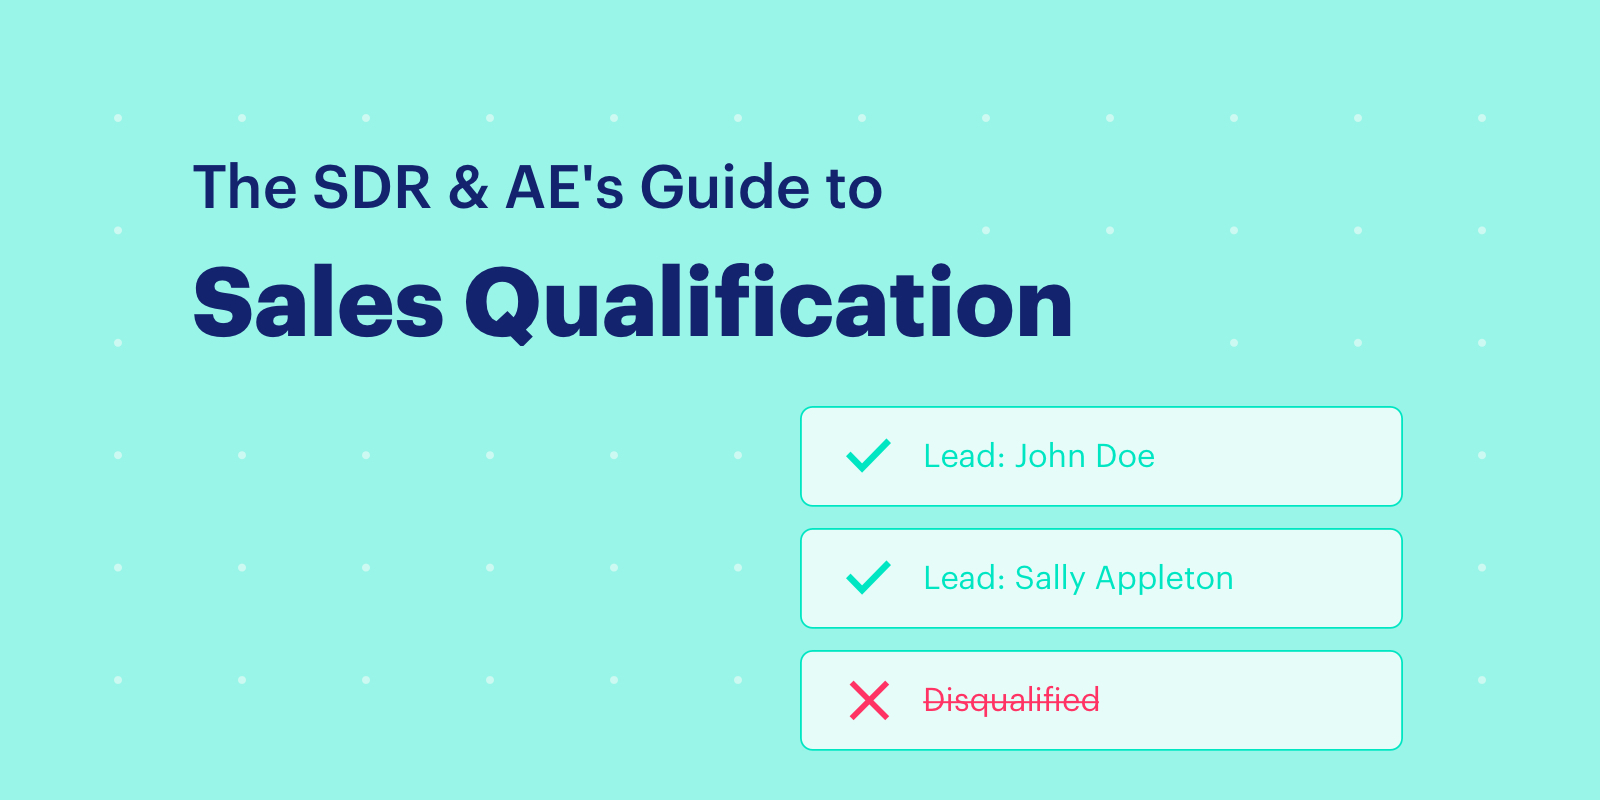 190110 Sdr Ae Guidetosalesqualification Header